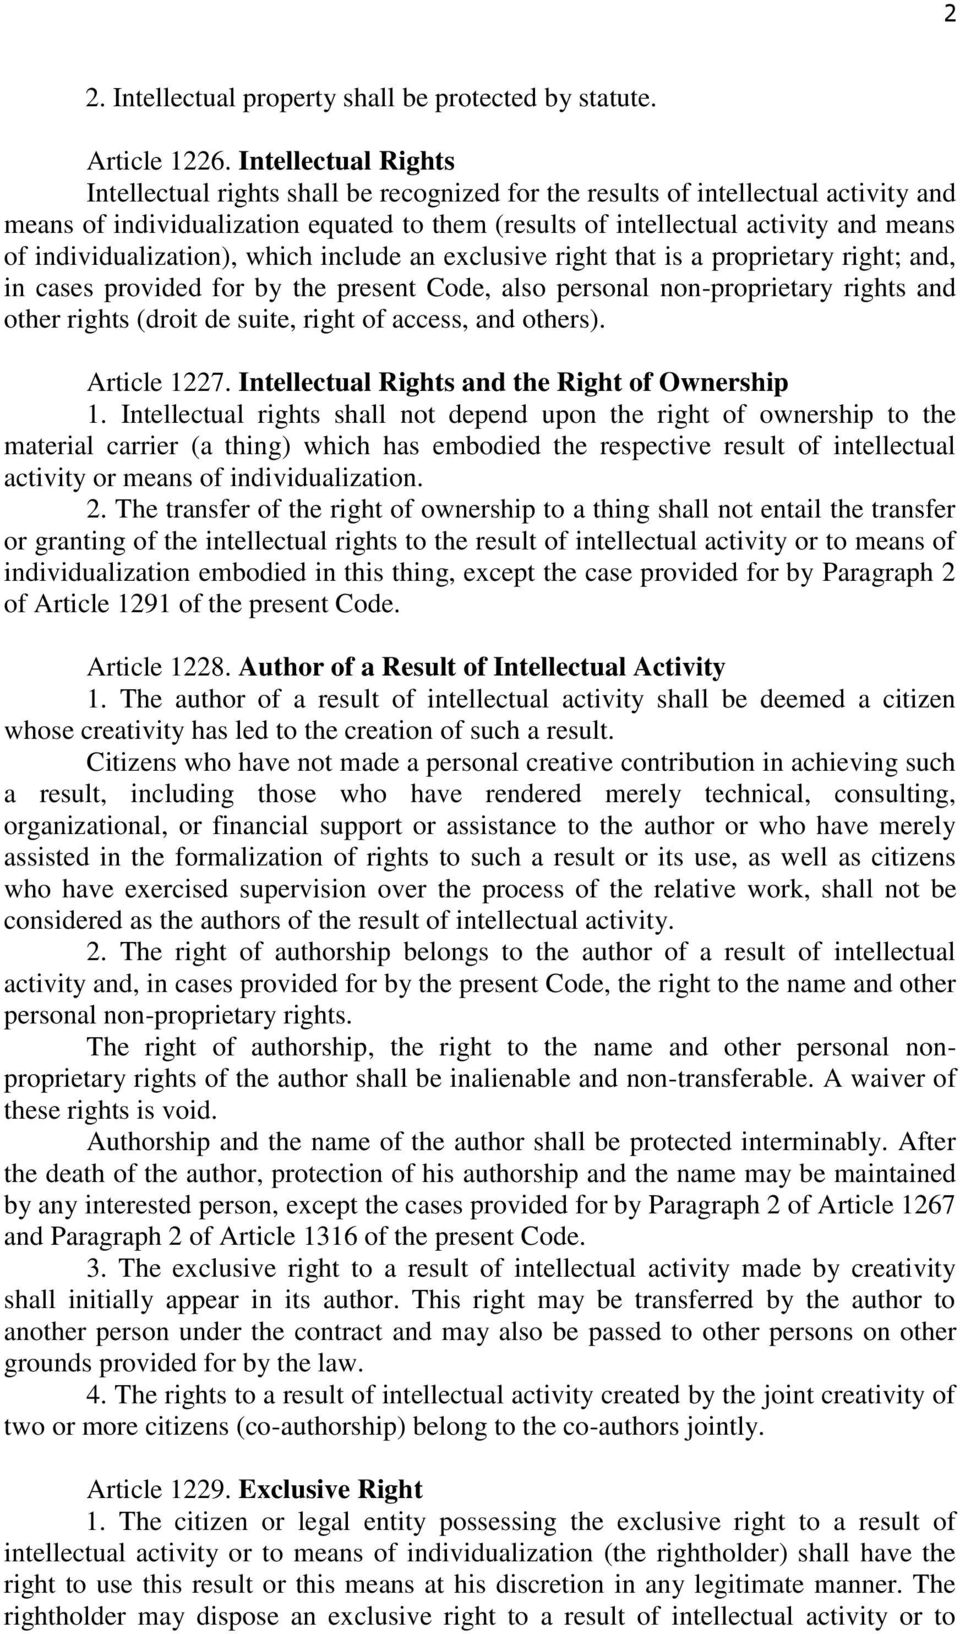 individualization), which include an exclusive right that is a proprietary right; and, in cases provided for by the present Code, also personal non-proprietary rights and other rights (droit de